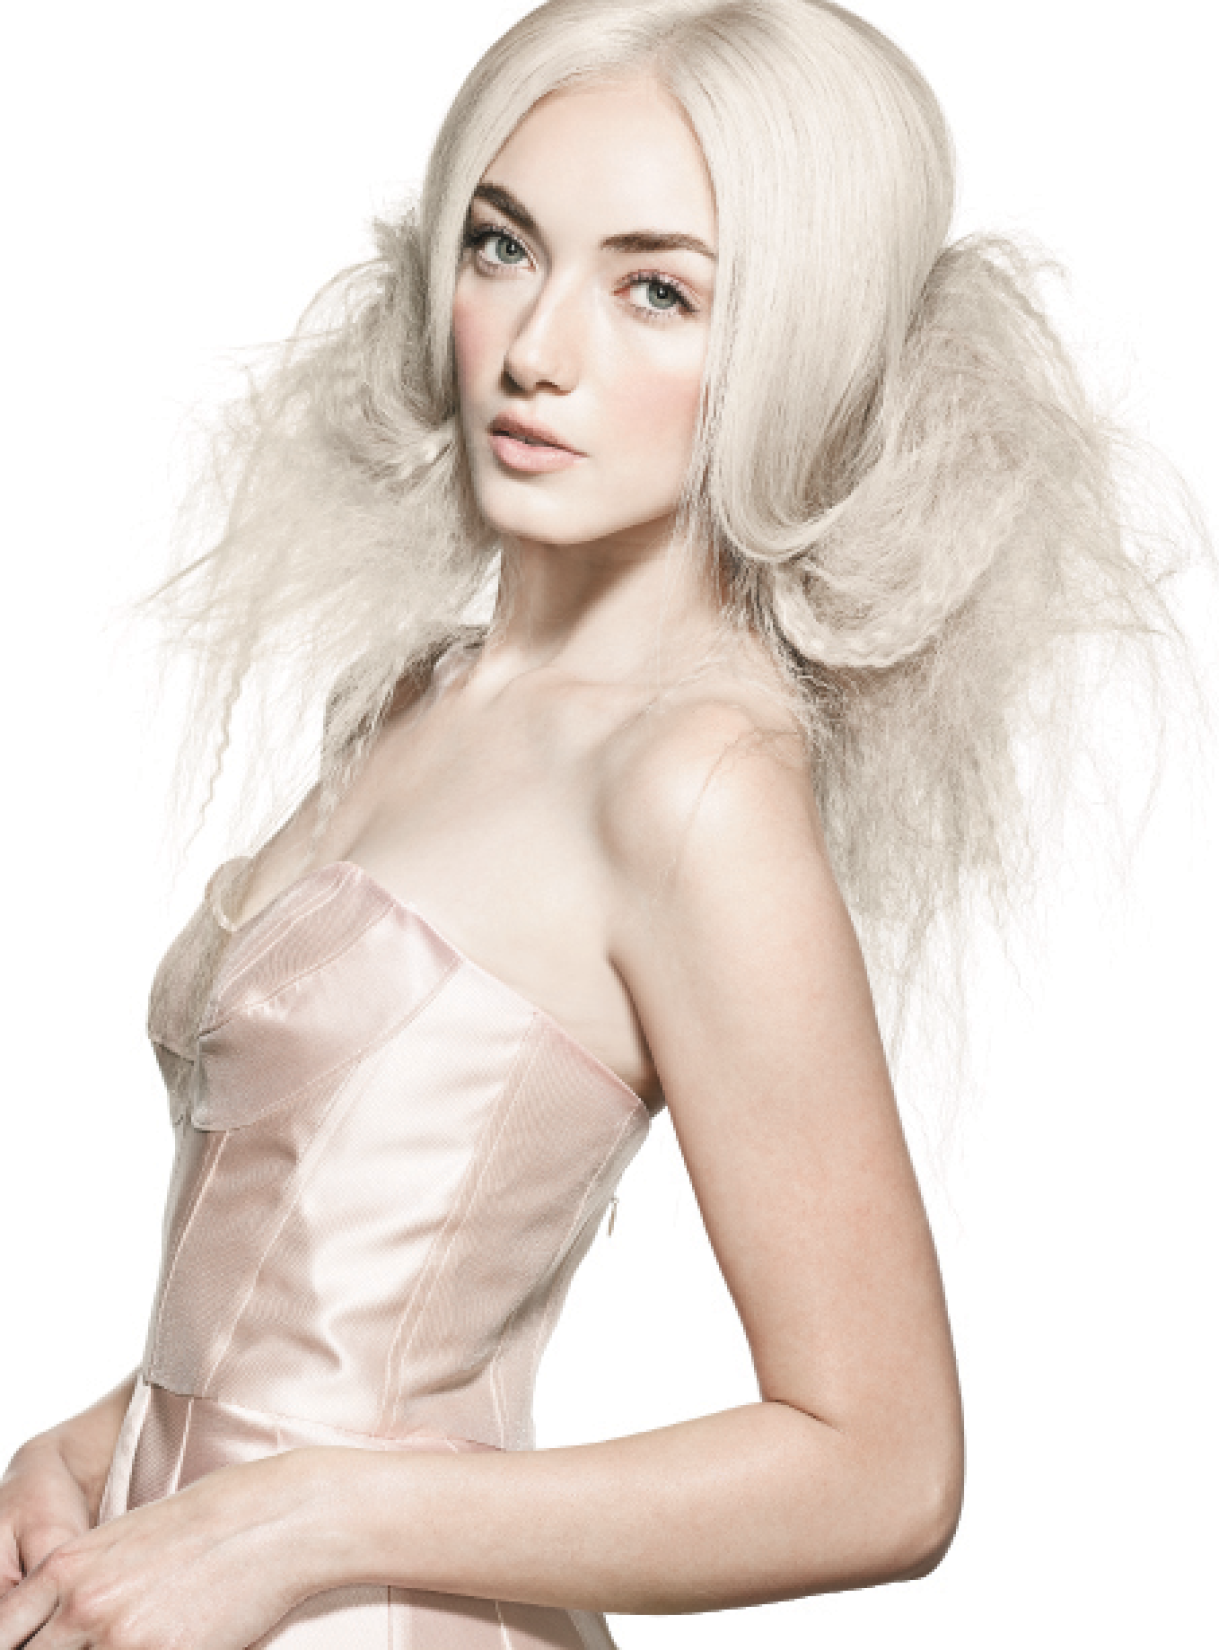 To create a faux fur collar incorporating the model's hair, Bossendorfer misted strands with Damage Manager before crimping them from the mid-lengths to the ends, leaving out the front section. She lightly backbrushed the hair for volume, placed bobby pins around the head just below the occipital and joined them for an anchor. At the center nape, she flipped a four-inch section, pinning the hair to the anchor and continuing to the side sections, which she rolled into the back. She used Fresh Hair to finish the look. Dress: A.B.S